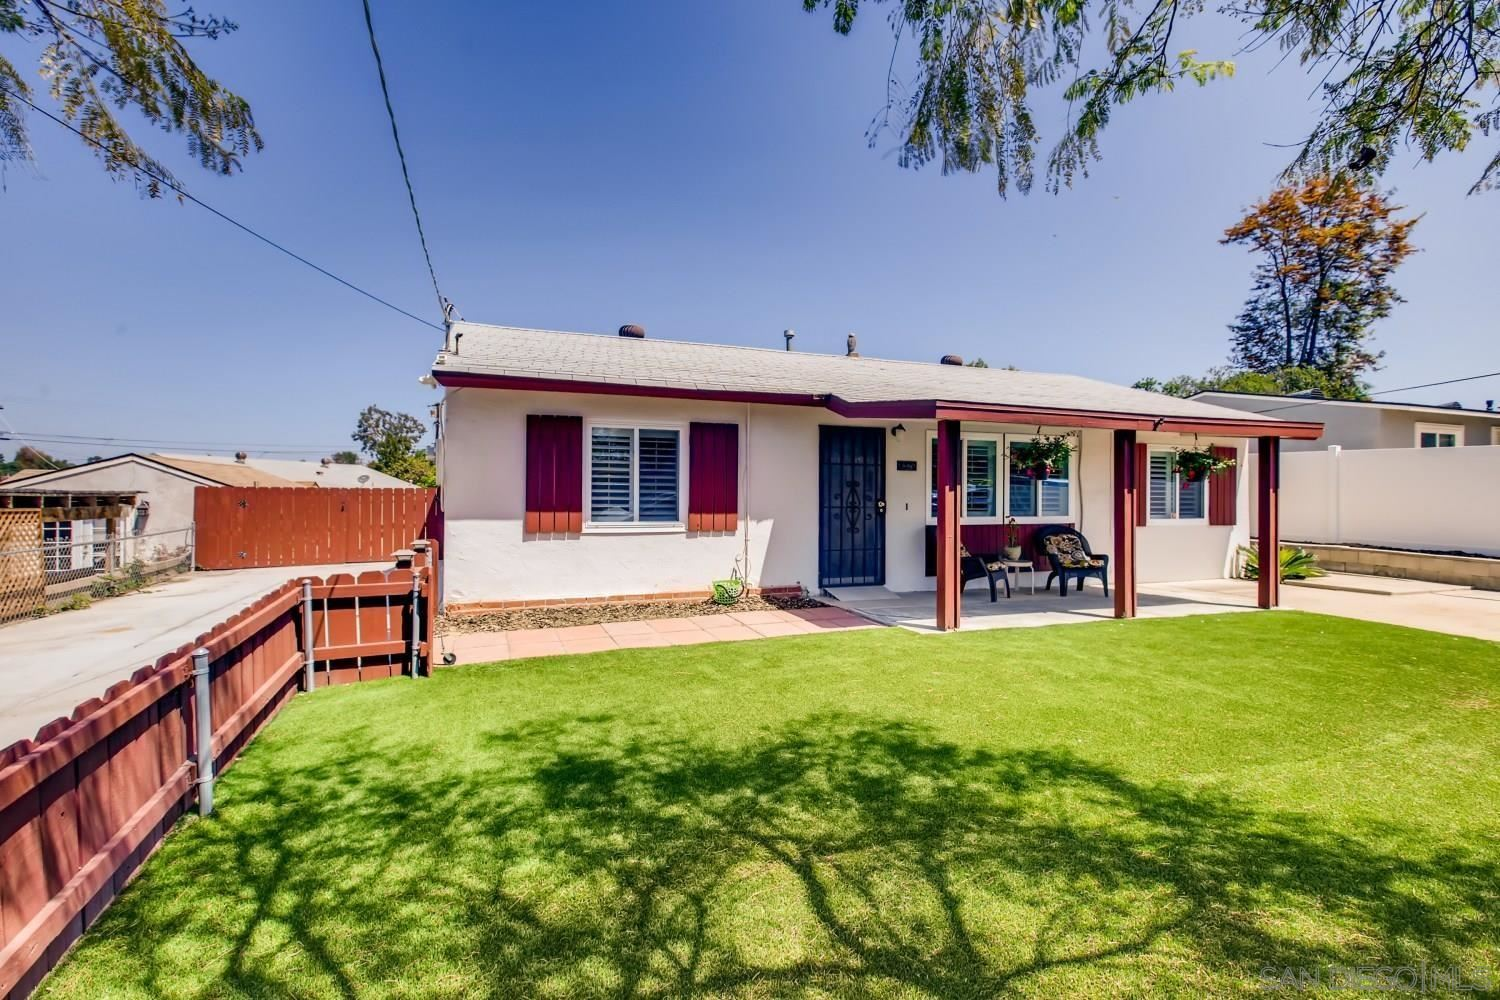 Photo for 8320 Solana Street, San Diego, CA 92114 (MLS # 210011825)